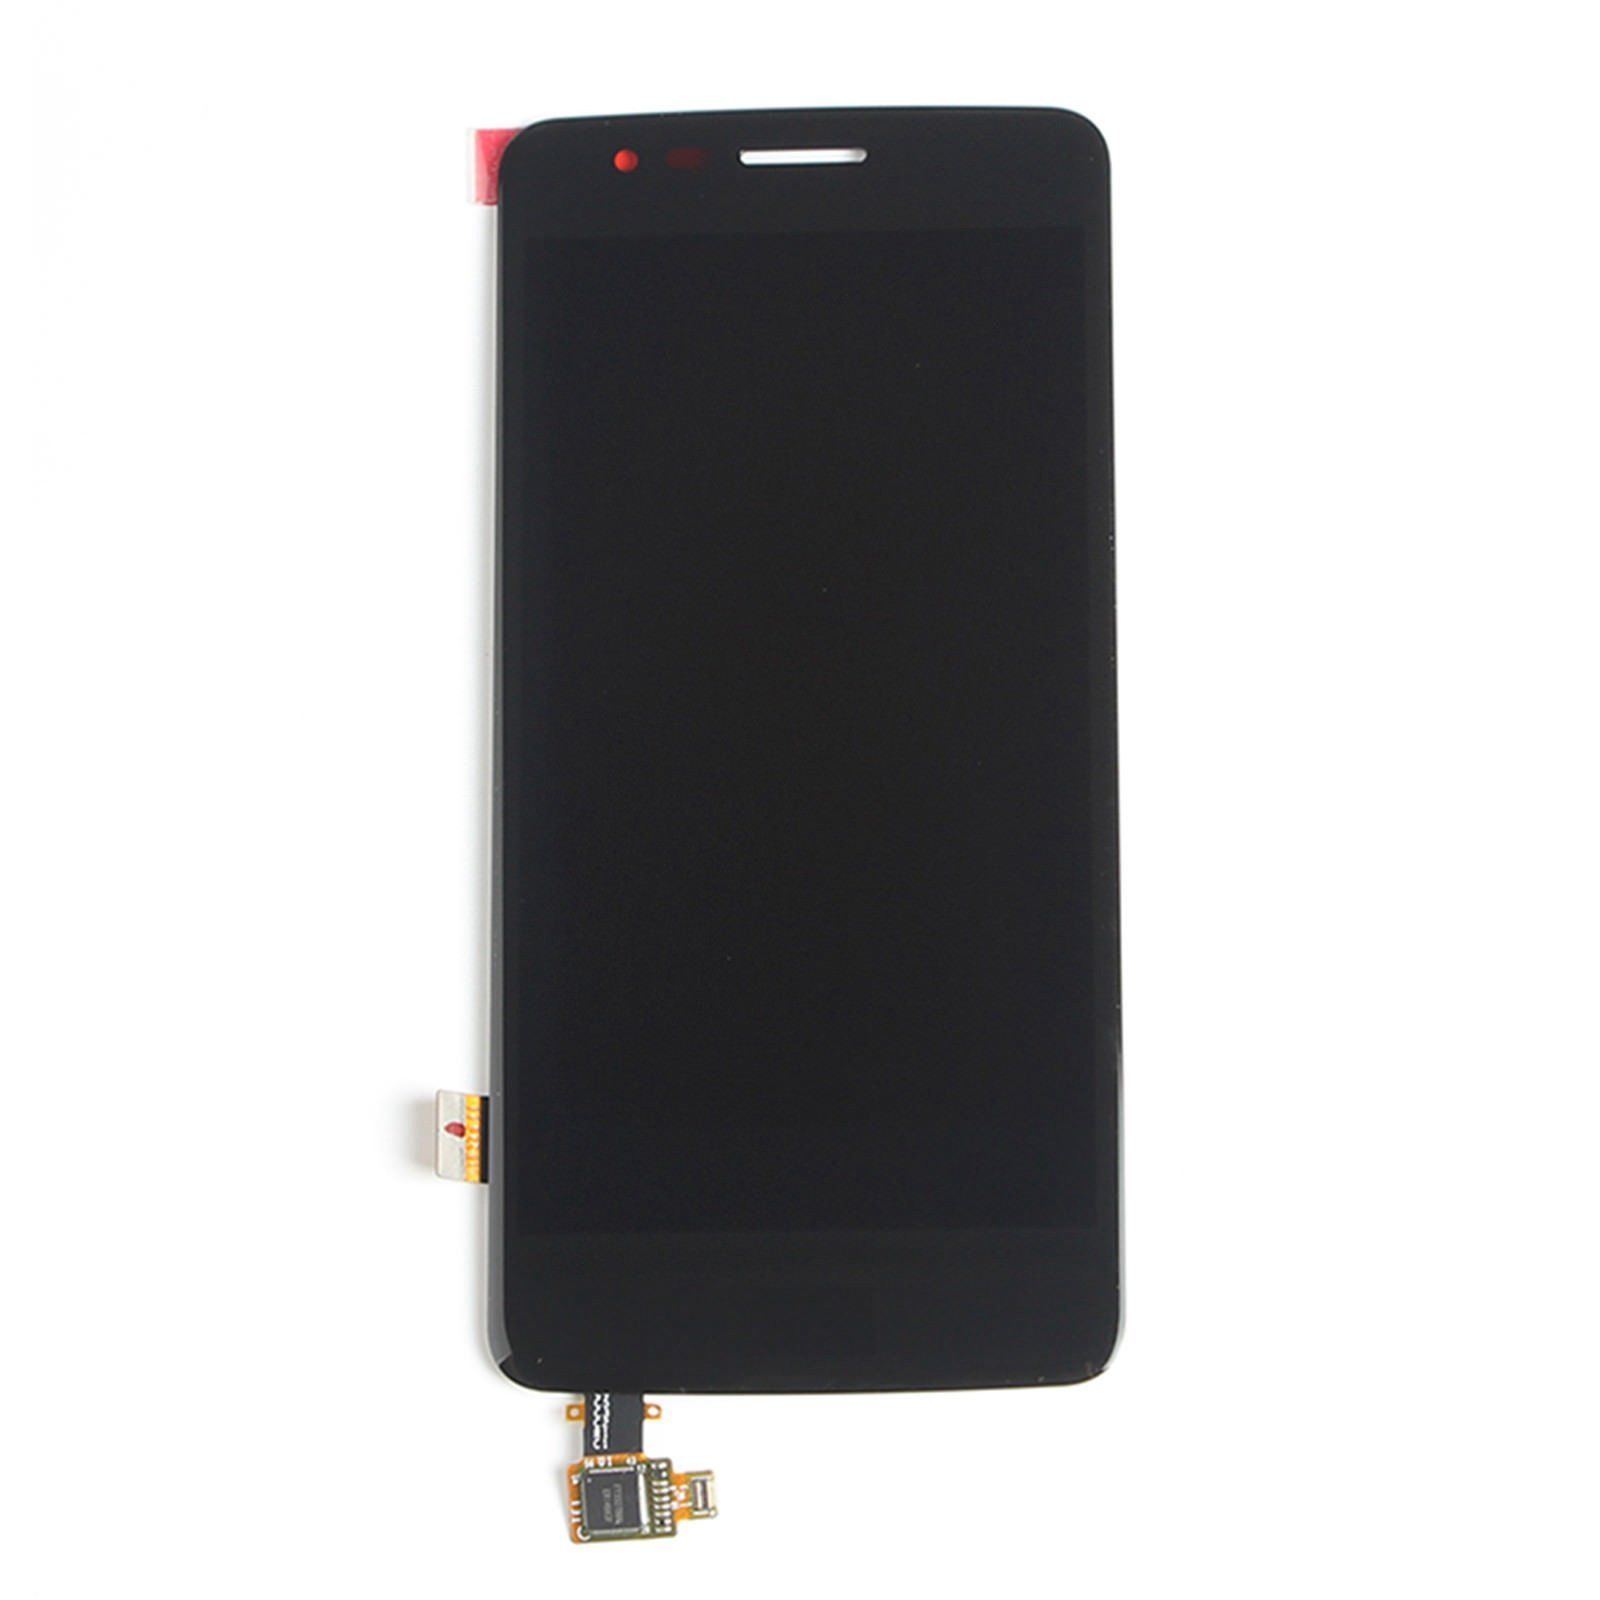 Original <font><b>LCD</b></font> For <font><b>LG</b></font> K8 2017 <font><b>X240</b></font> <font><b>LCD</b></font> Display Touch Screen Digitizer with Bezel Frame Full Assembly Black White Free shipping image